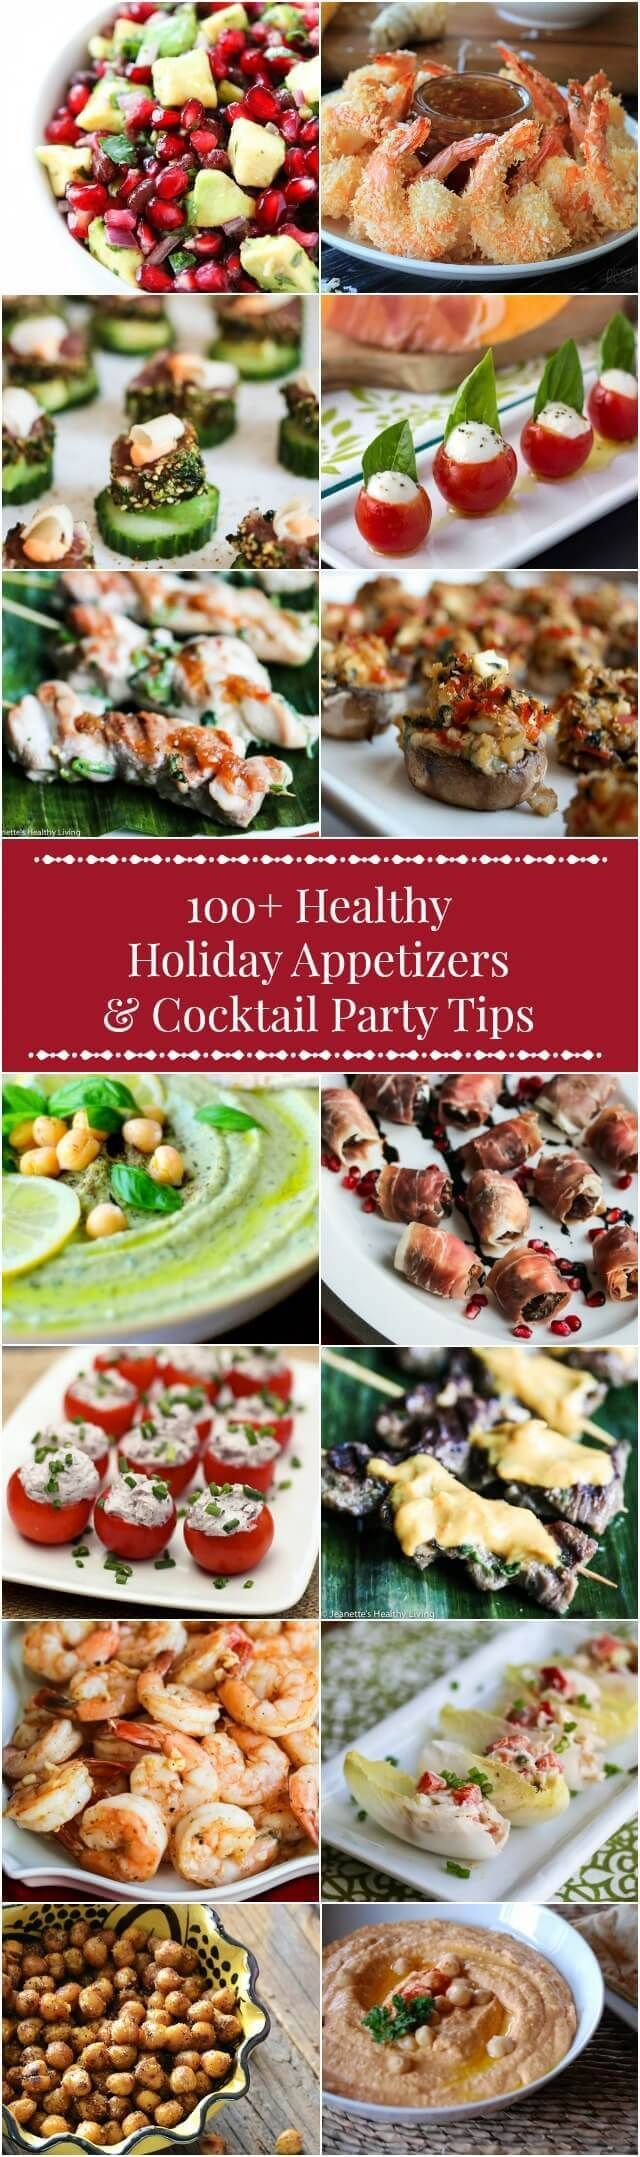 100+ Healthy Holiday Appetizer Recipes + Cocktail Party Menu Planning Tips FoodBlogs.com